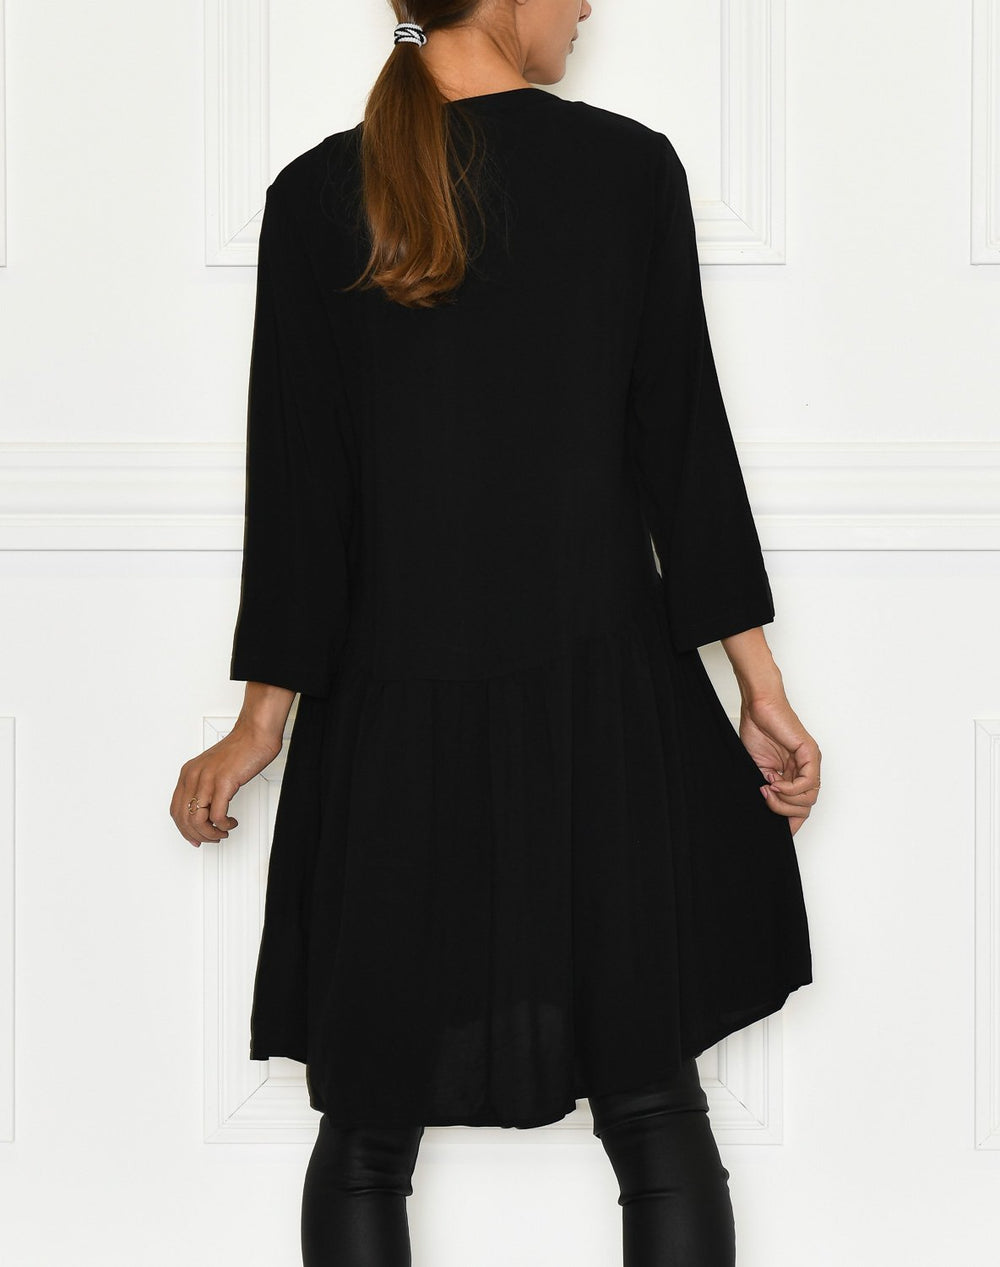 B.Young BYIlla dress black solid - Online-Mode